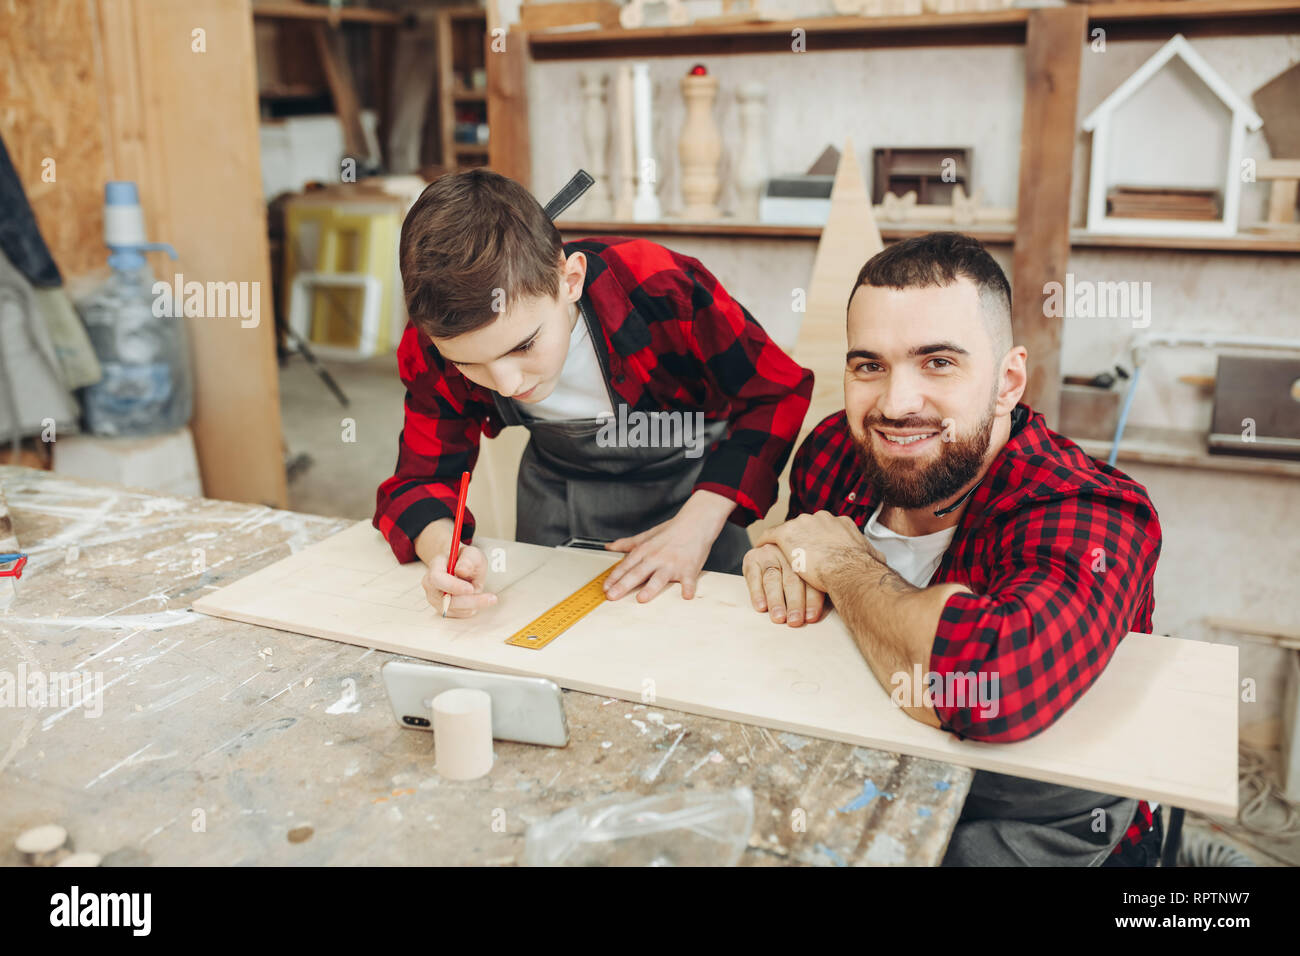 Caucasian man and caring father helping his concentrated pre-teen ager son to take measures of wooden plank in workshop during family masterclass of c - Stock Image